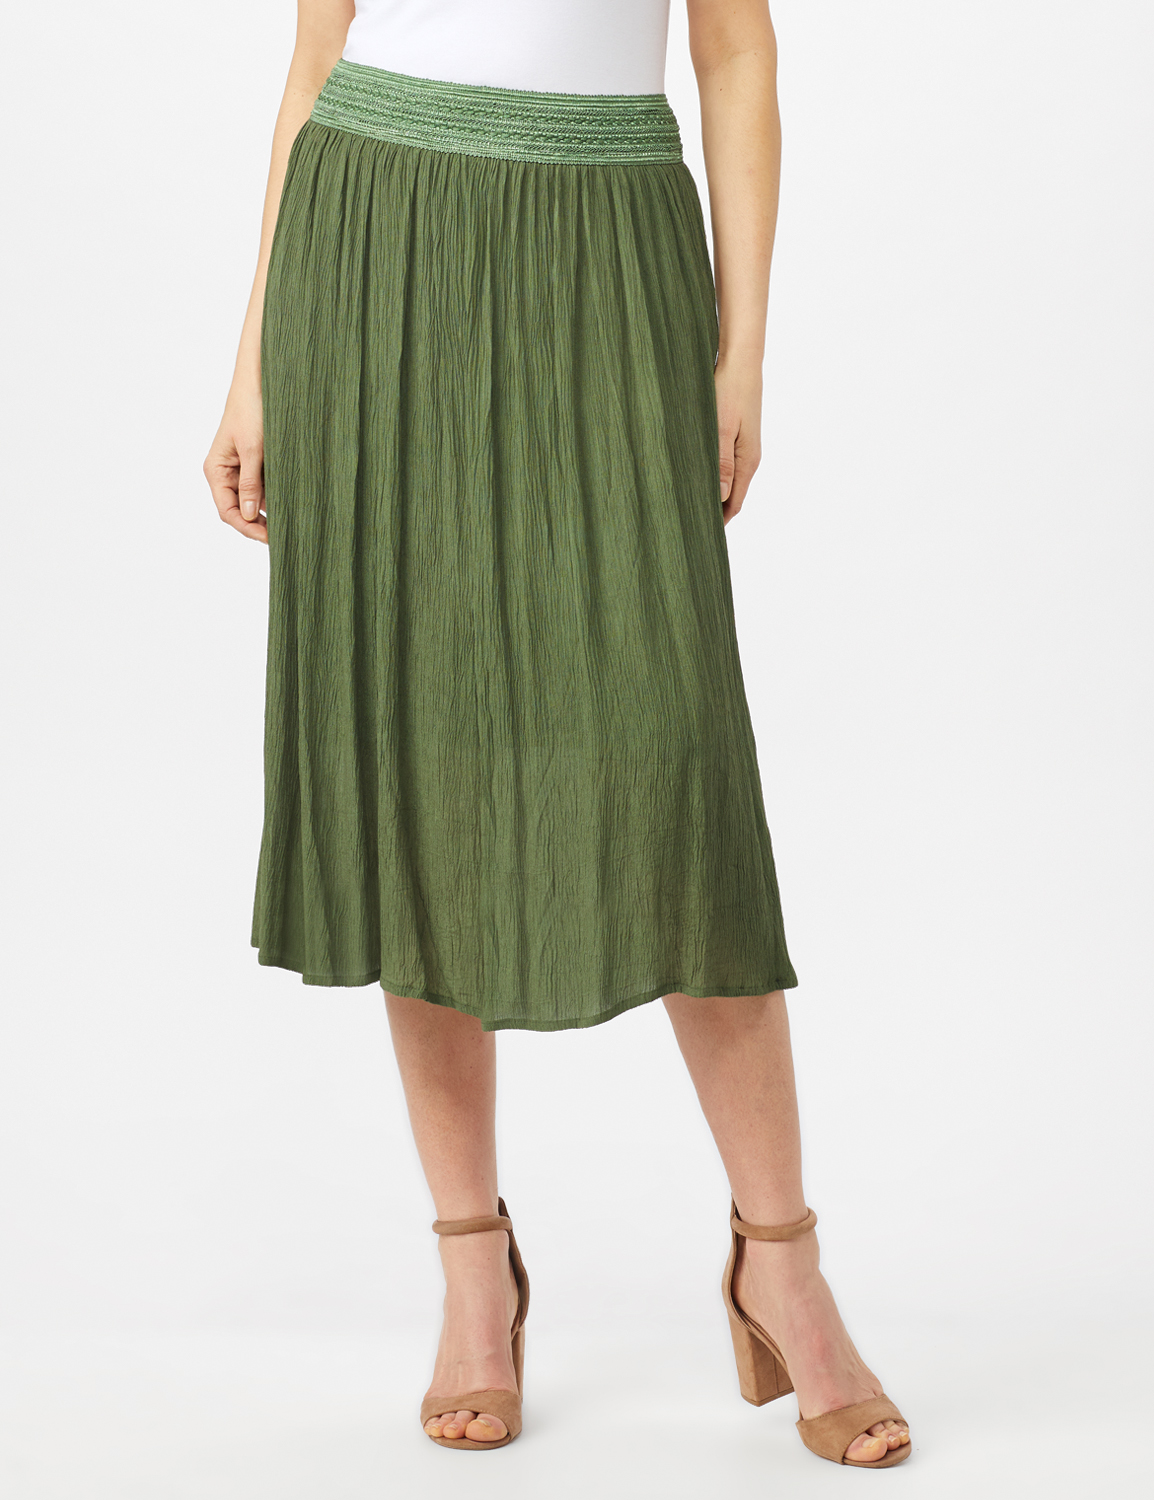 Rayon Gauze Skirt with Decorative Waistband -Olive - Front